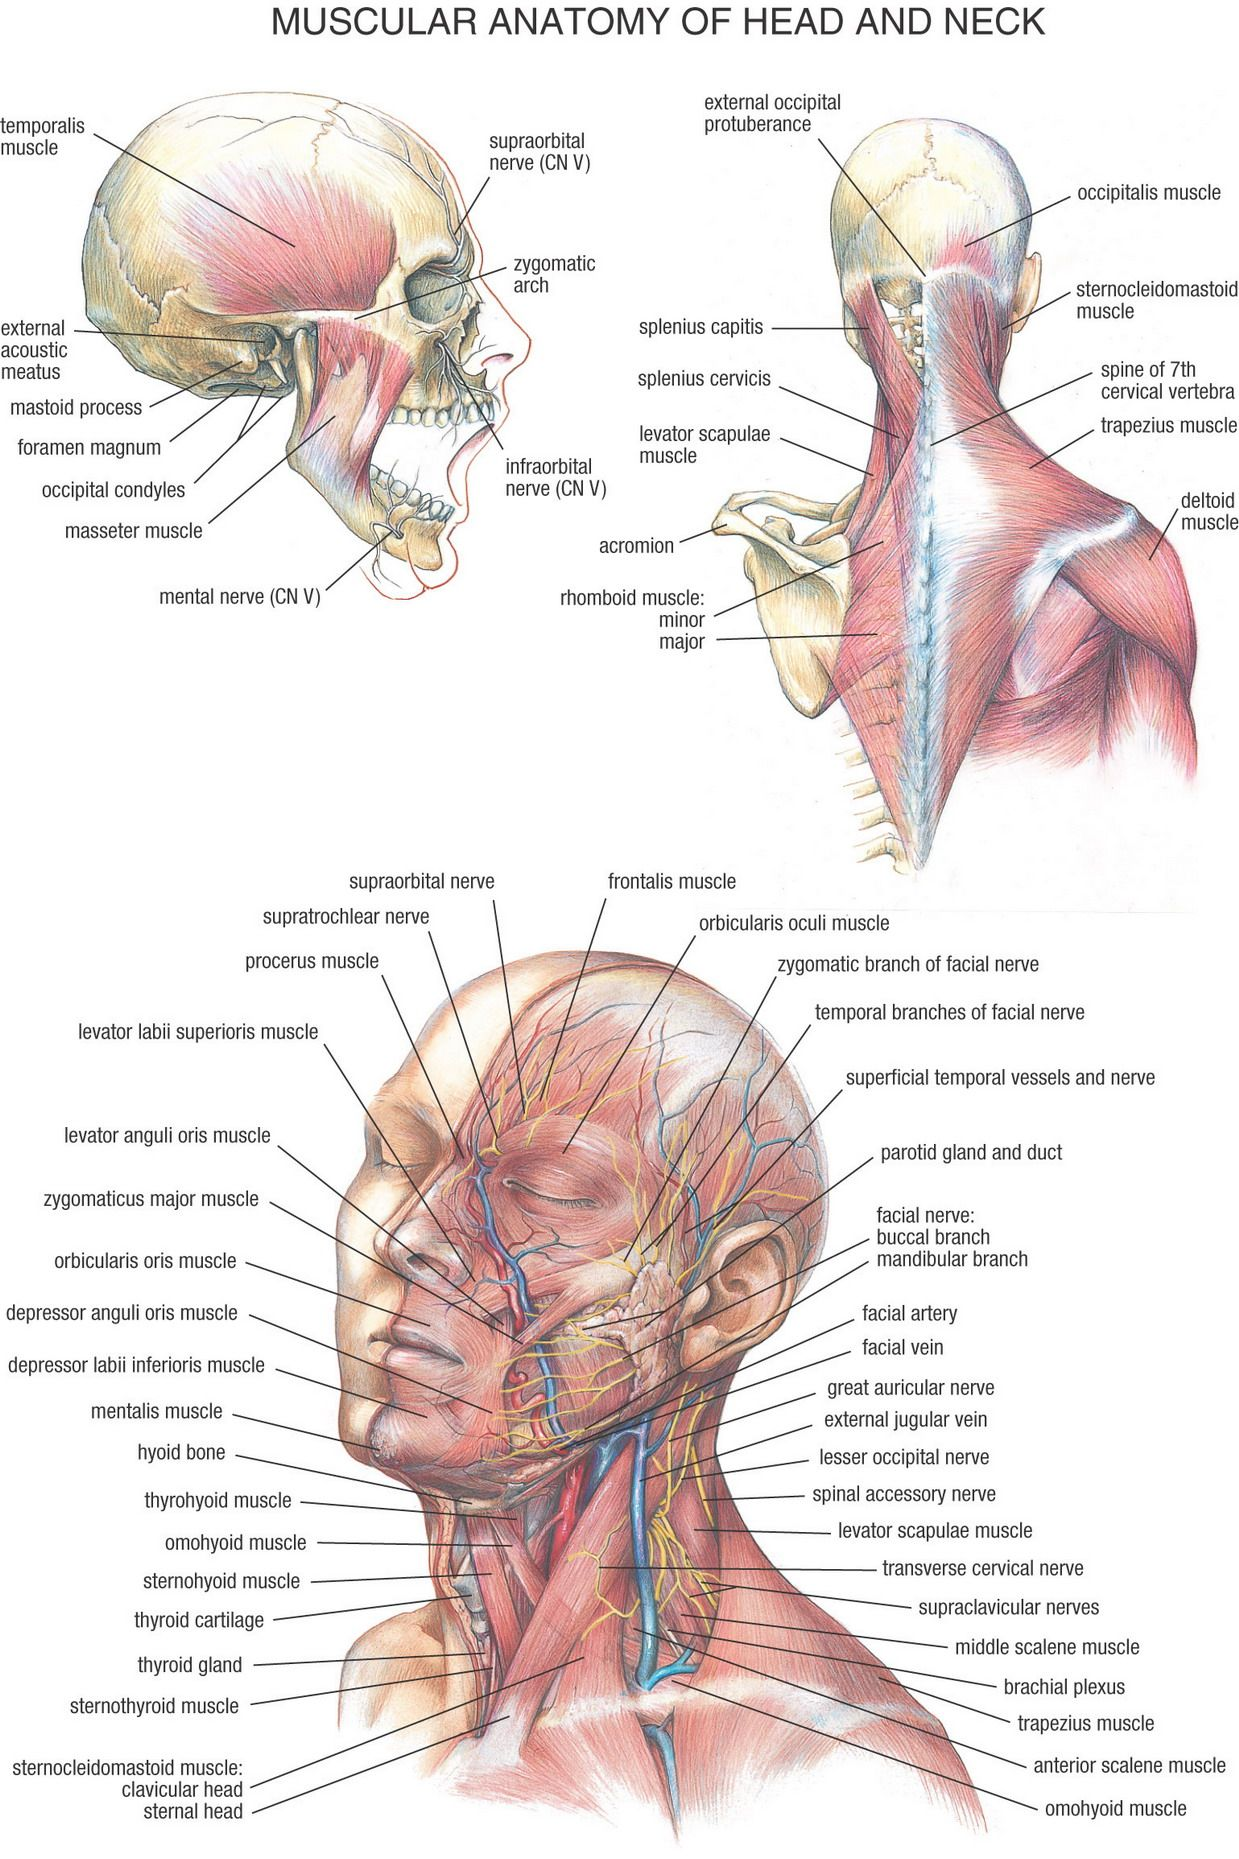 44bd3ee65e284a6b1993db5cf3b83875 pin by c yeo on anatomy pinterest muscle anatomy, neck muscle